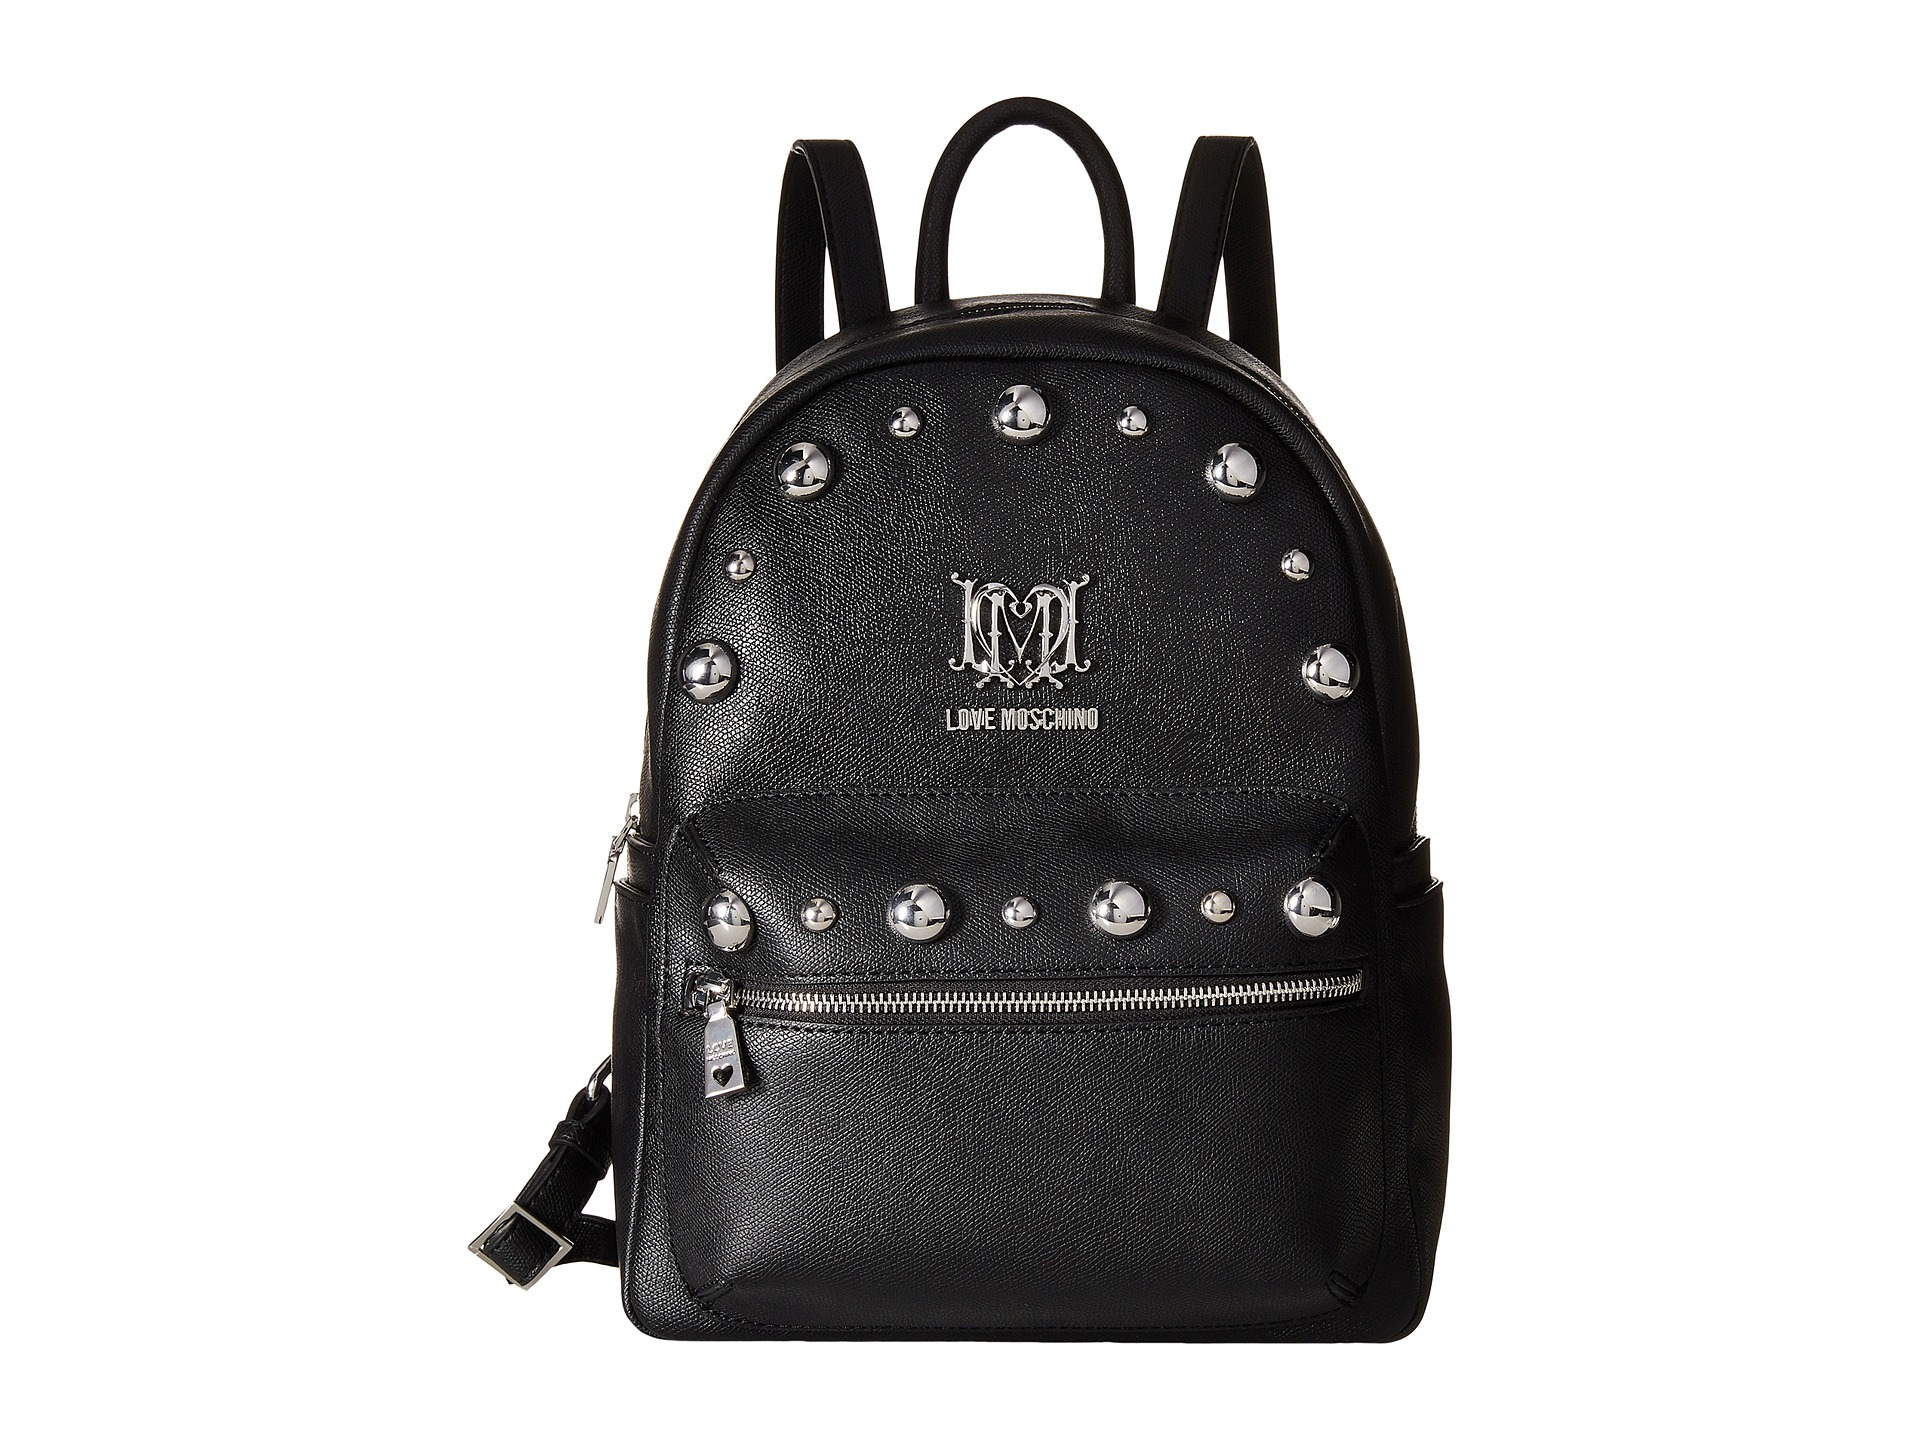 Lyst - Love Moschino Studs Backpack in Black ad245d0363e5d